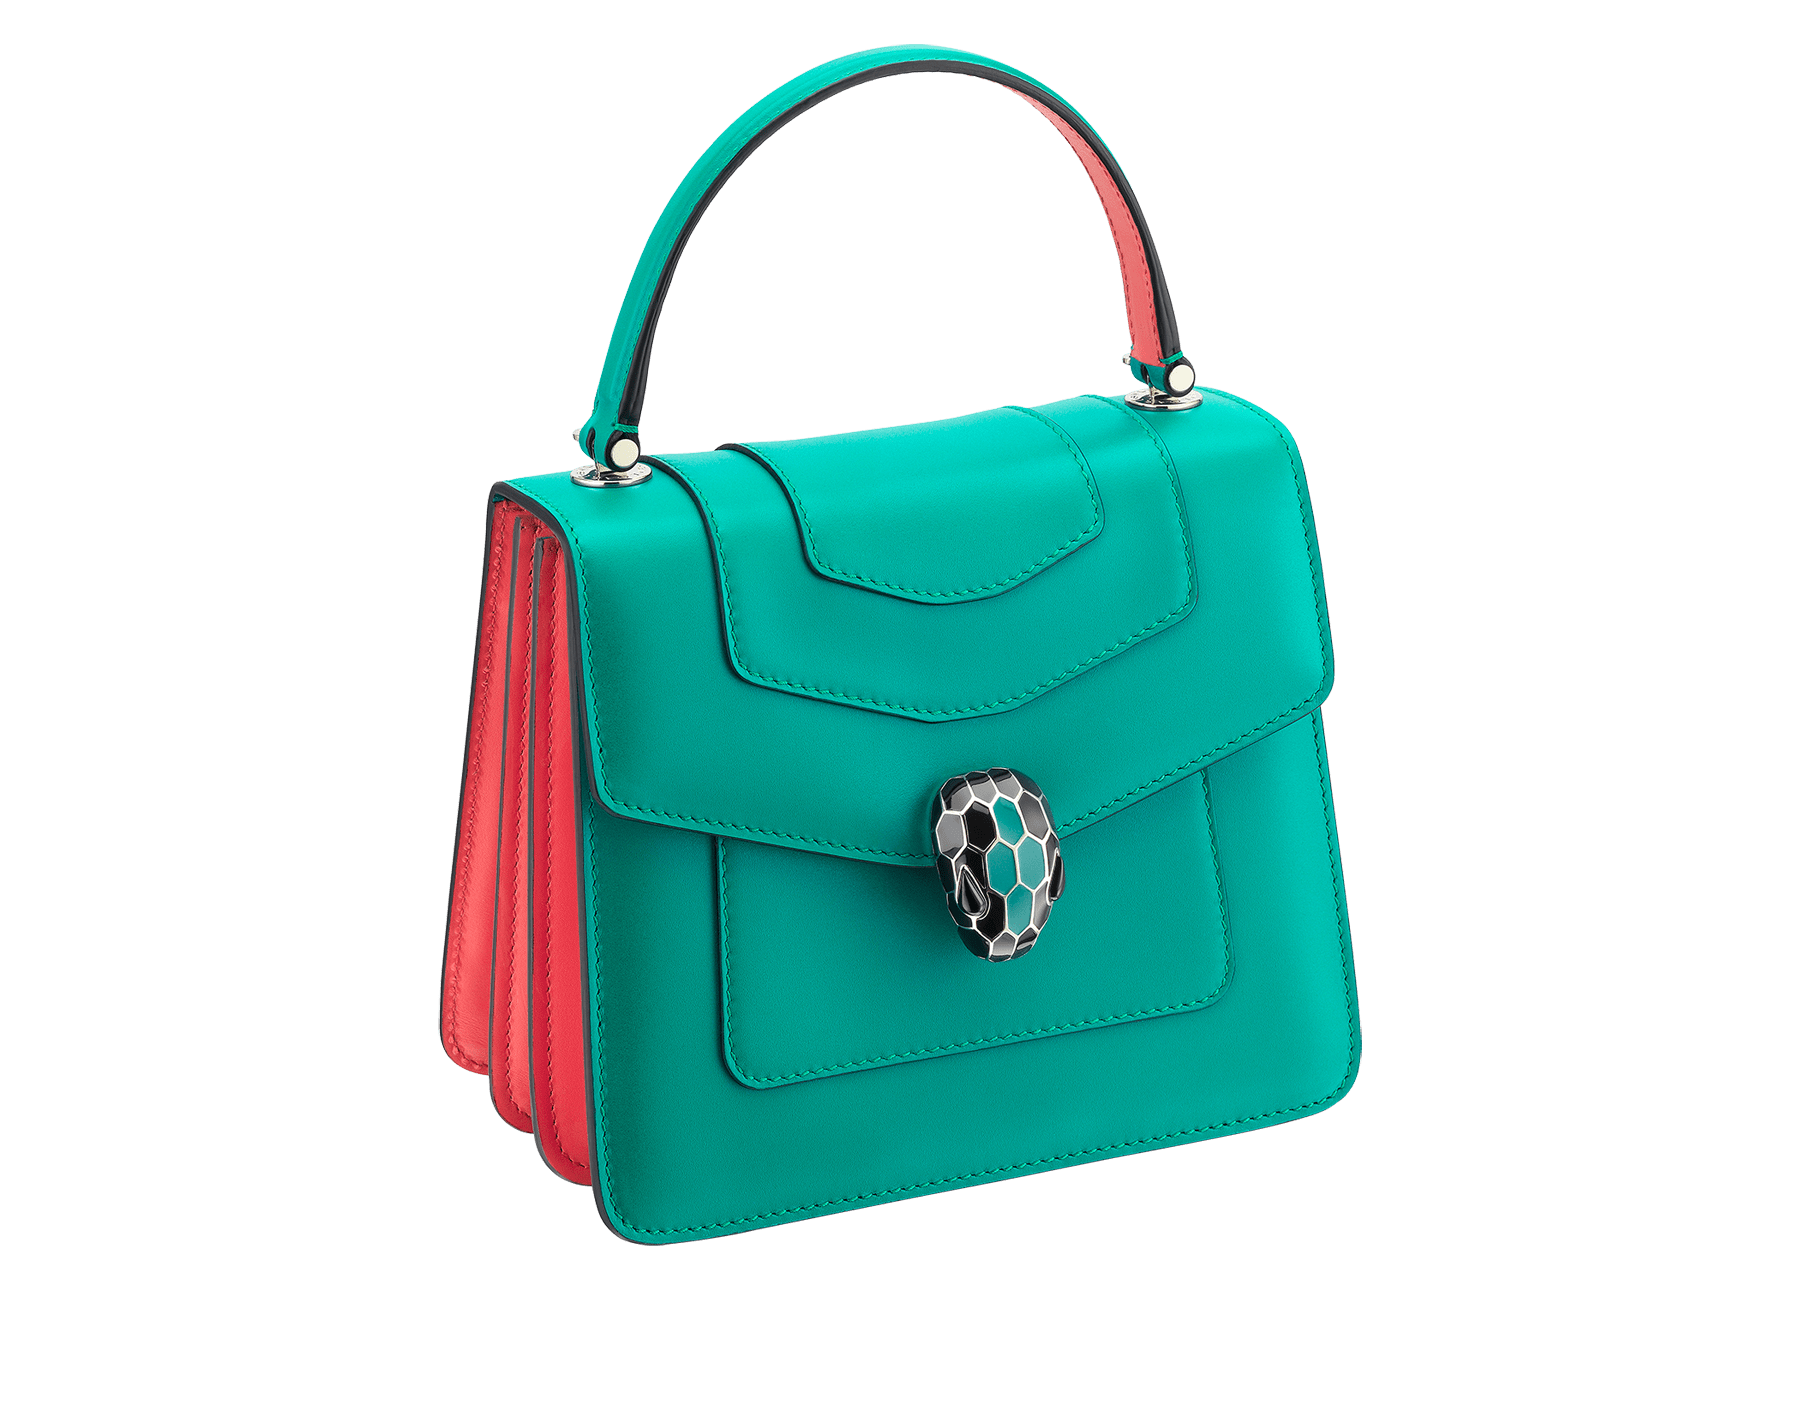 "Borsa a tracolla ""Serpenti Forever"" in vitello turchese tropicale con lati a contrasto in vitello color corallo. Iconica chiusura Serpenti in ottone placcato oro chiaro e smalto nero e turchese tropicale con occhi in onice nera. 287964 image 2"